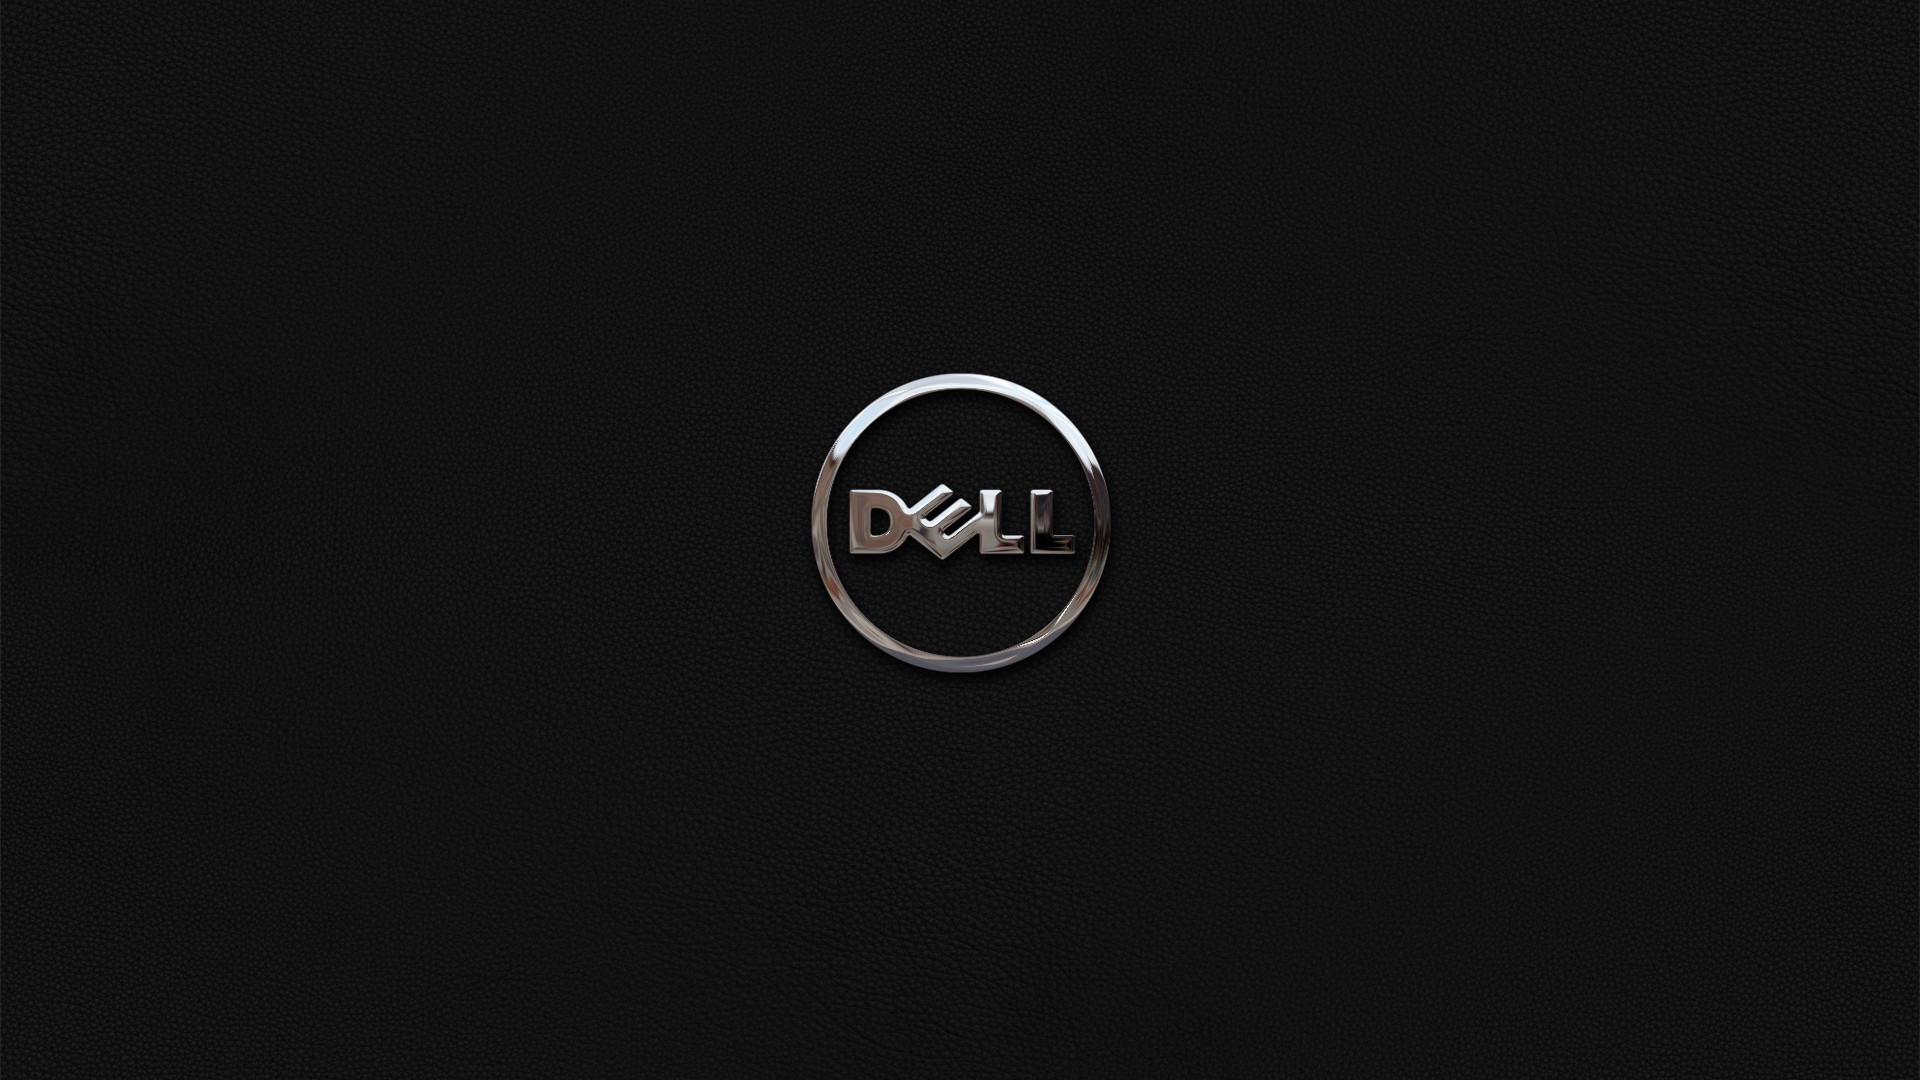 Dell Desktop Background